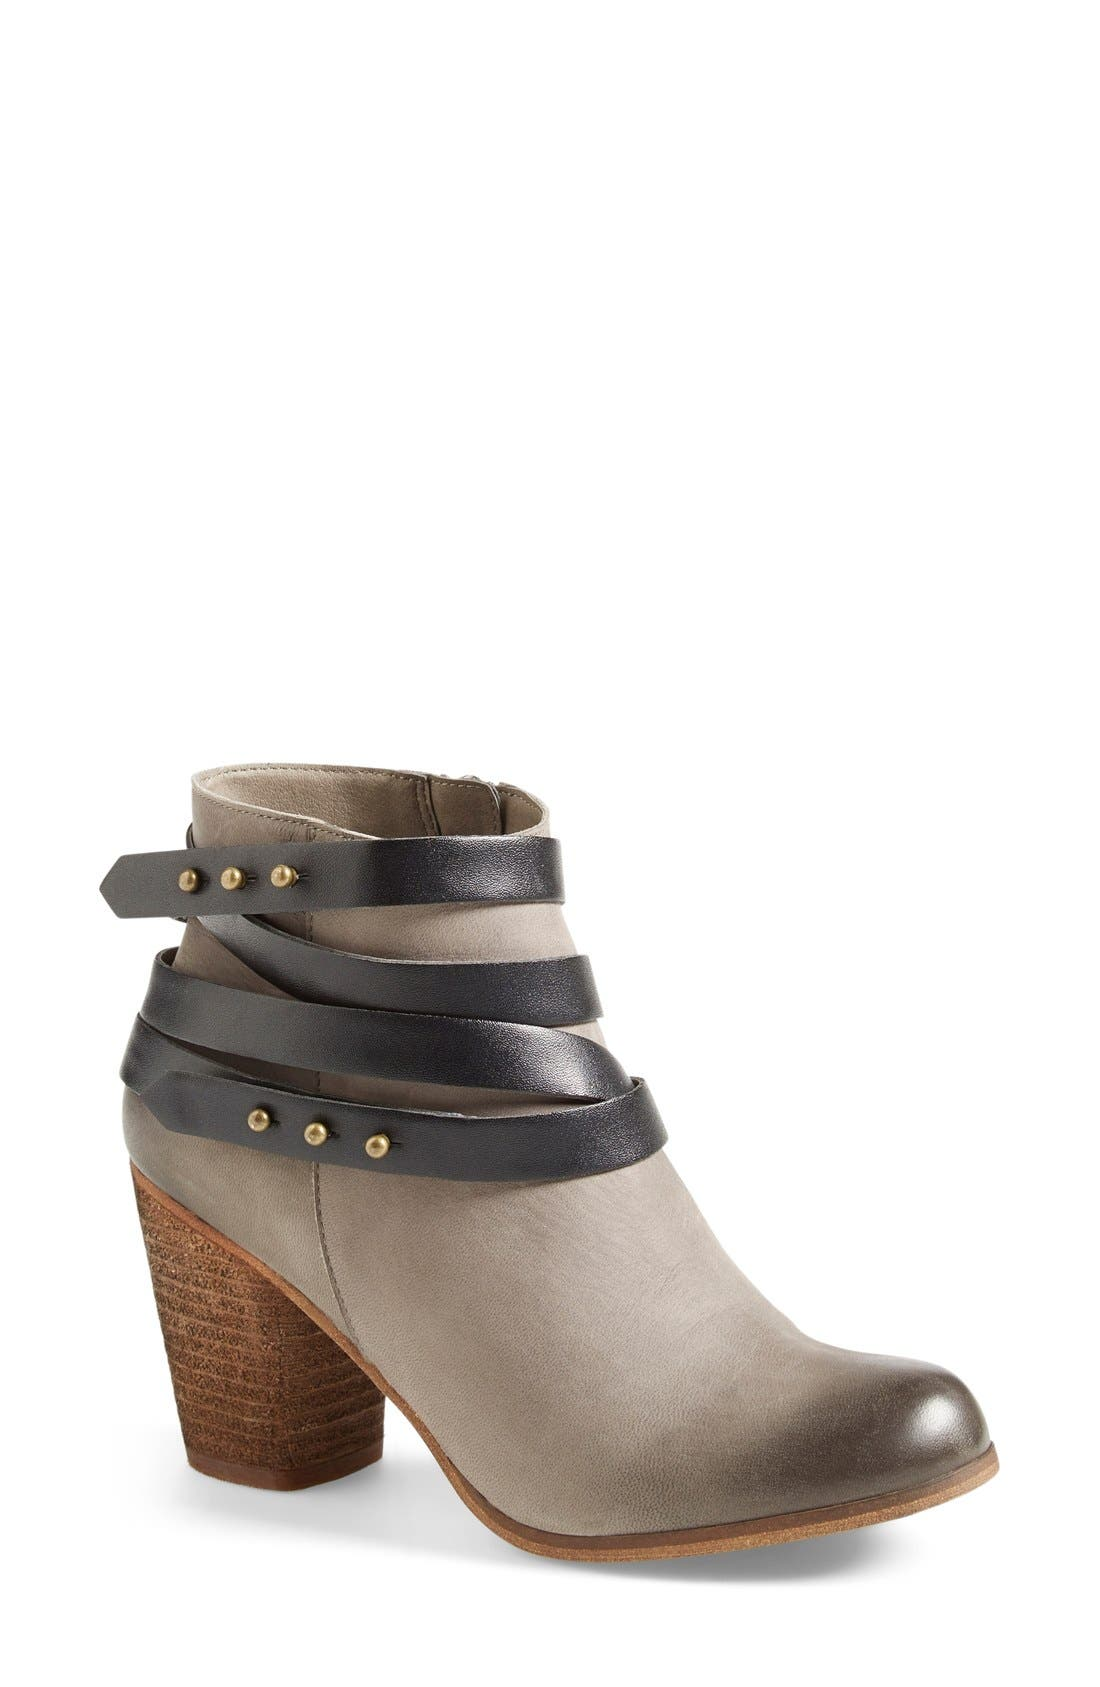 Alternate Image 1 Selected - BP. 'Train' Wrap Belted Bootie (Women)